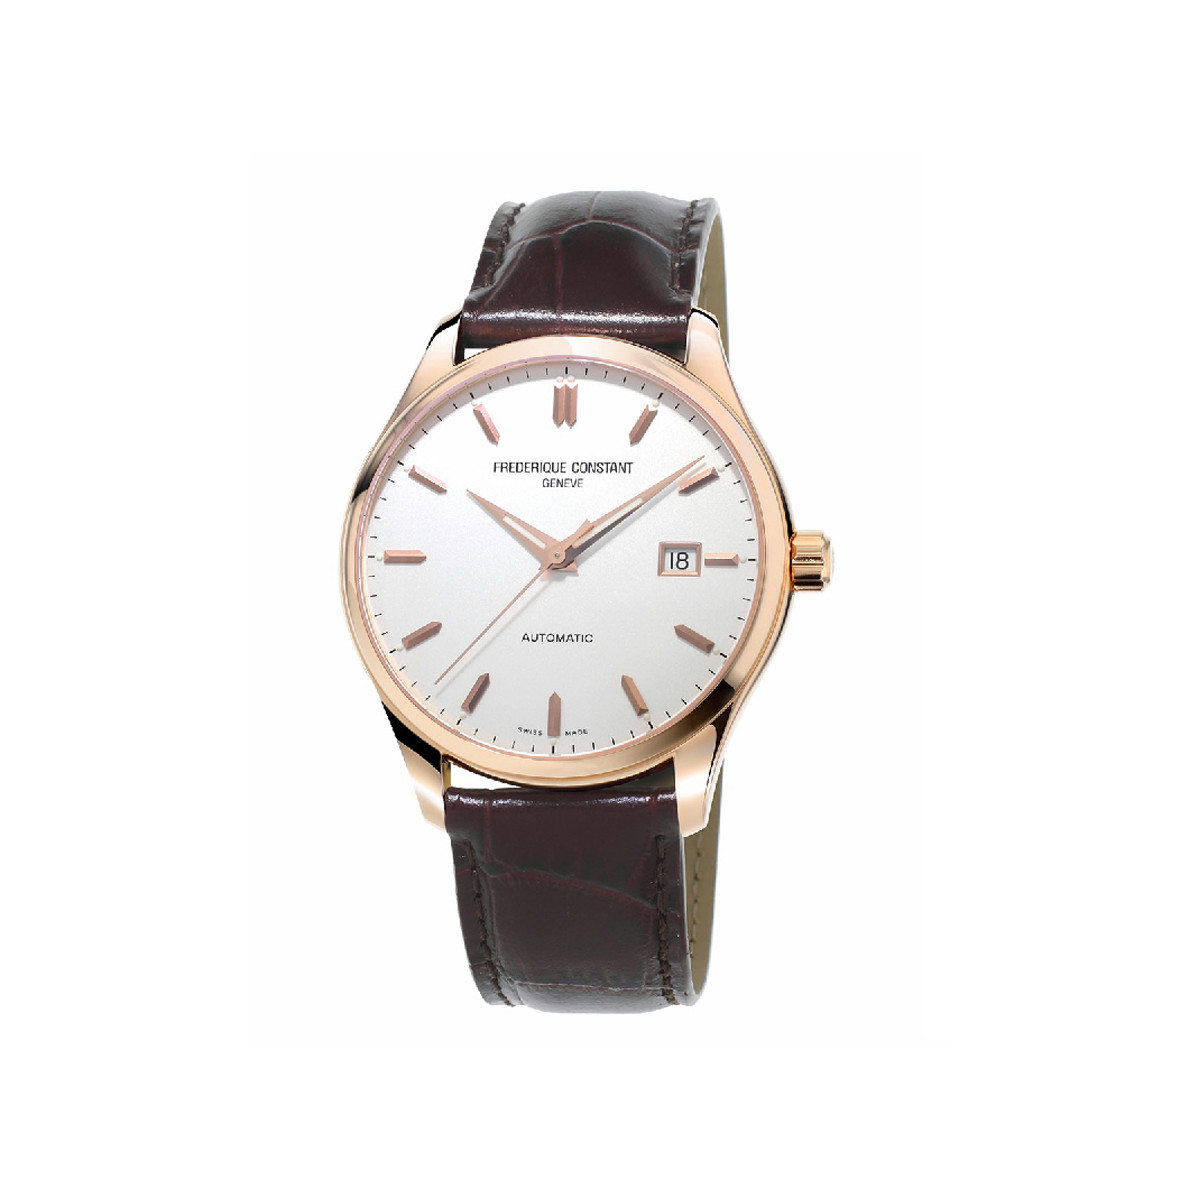 FREDERIQUE CONSTANT NEW INDEX AUTOMATIC GOLD PLATED